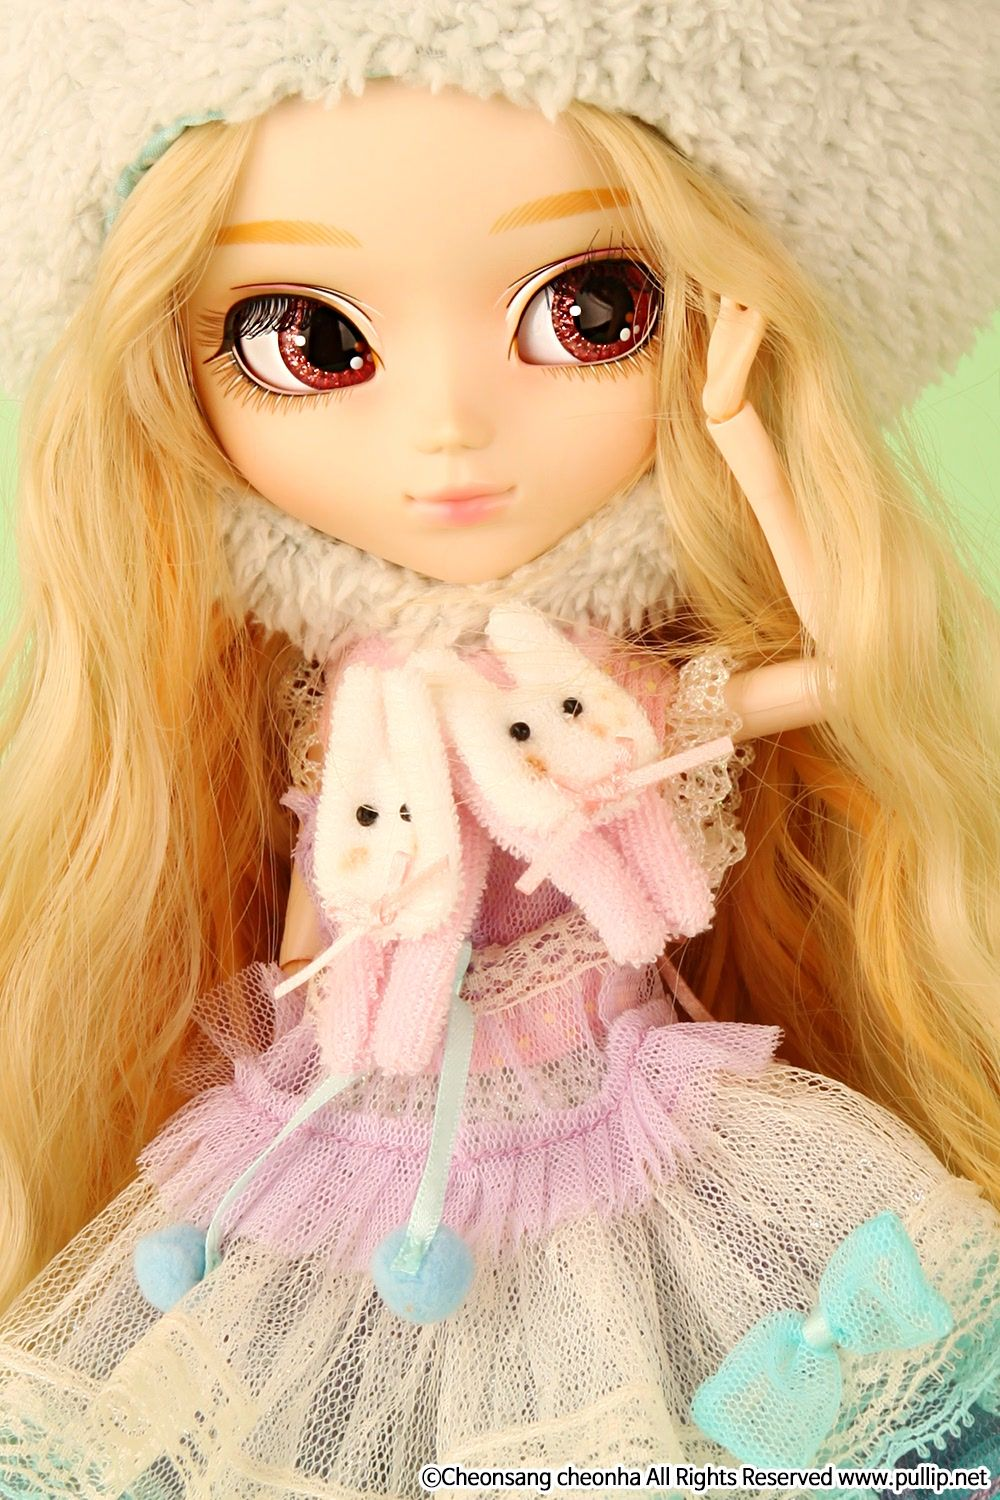 pullip kiyomi mint ice cream - Google Search